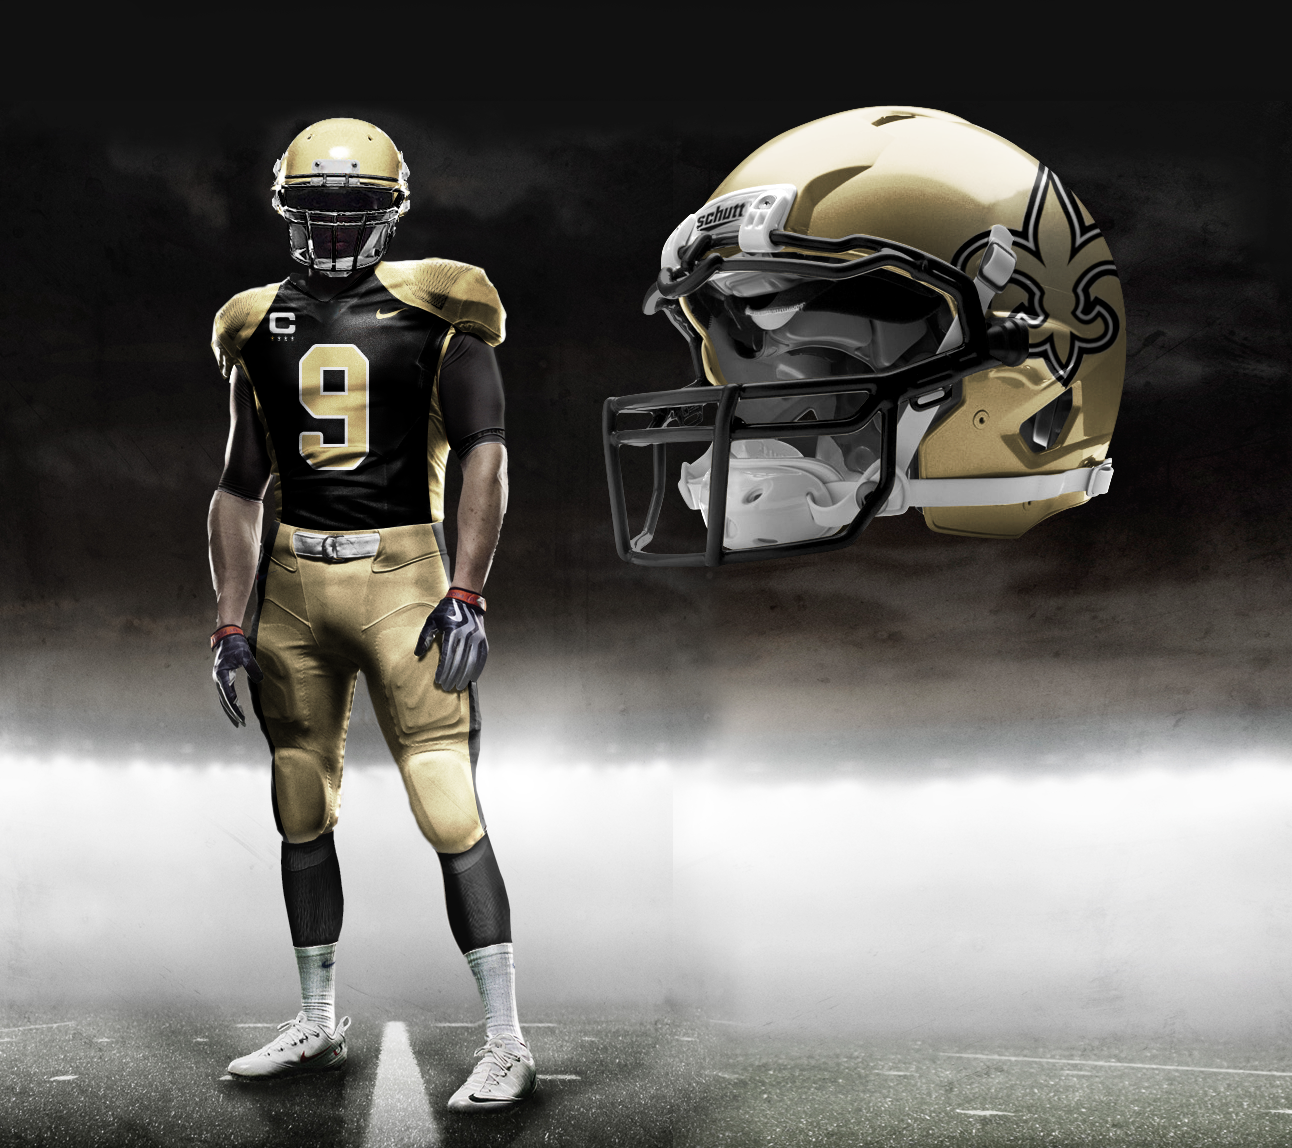 Nike Pro Combat NFL Uniforms: Check Out